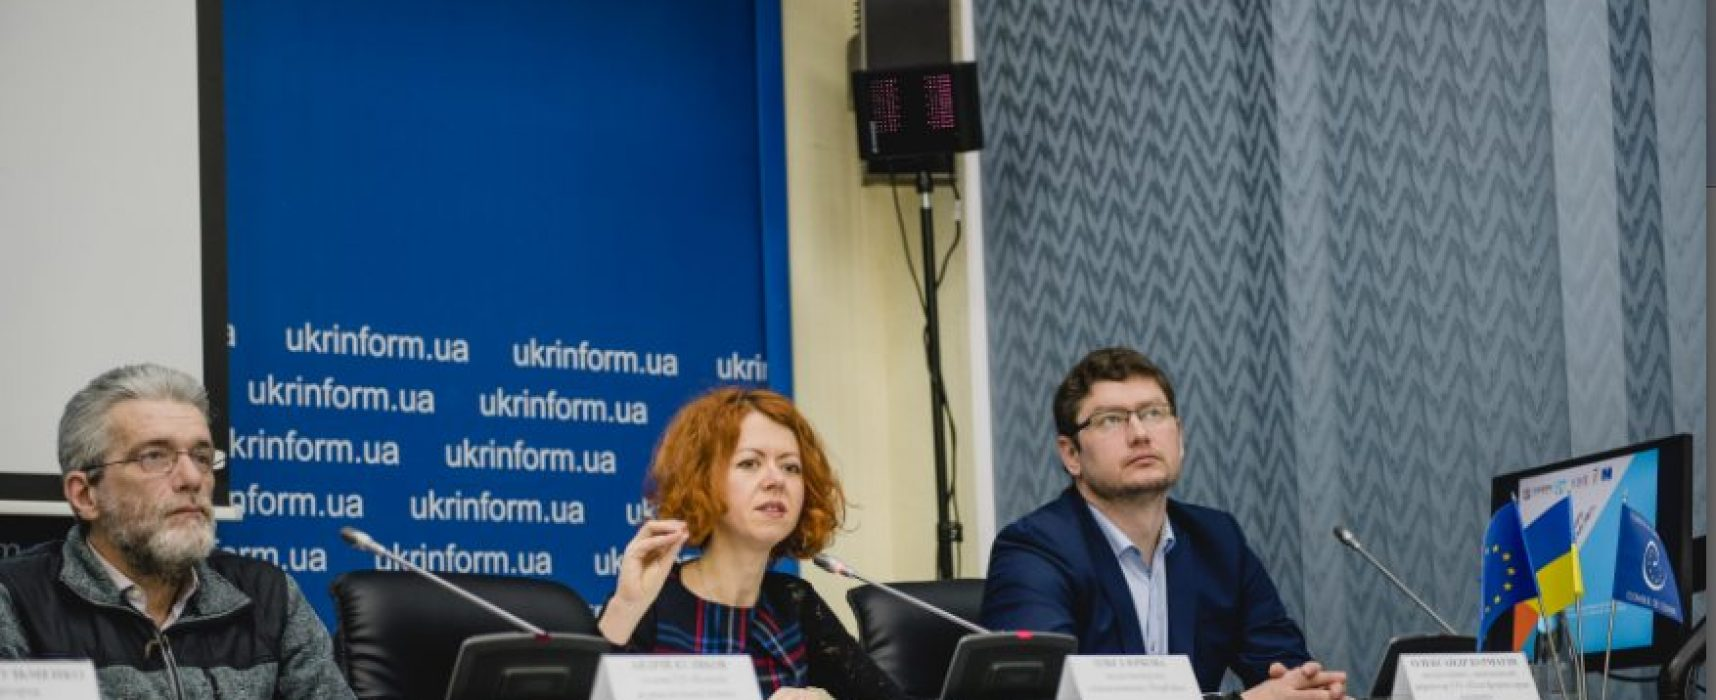 Russian influence has become one of the dominant topics of the pre-election discourse: the results of media monitoring of the second round of elections